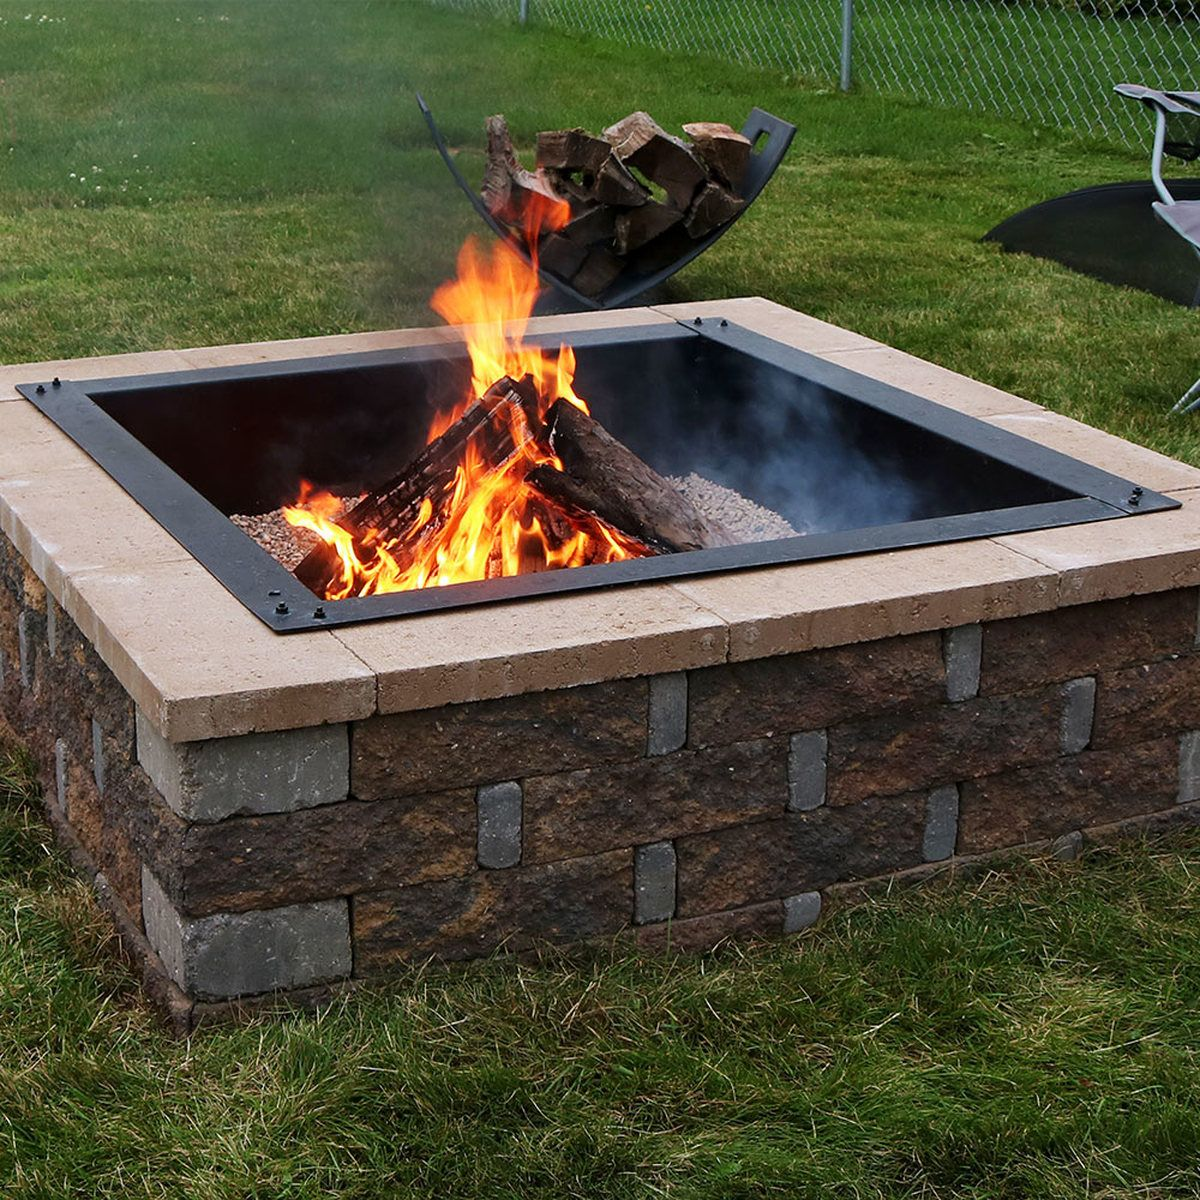 Sunnydaze Square Heavy Duty Fire Pit Rim Liner Diy Fire Pit Above Or In Ground Steel Square Fire Pit Wood Burning Fire Pit Fire Pit Backyard Backyard diy square fire pit